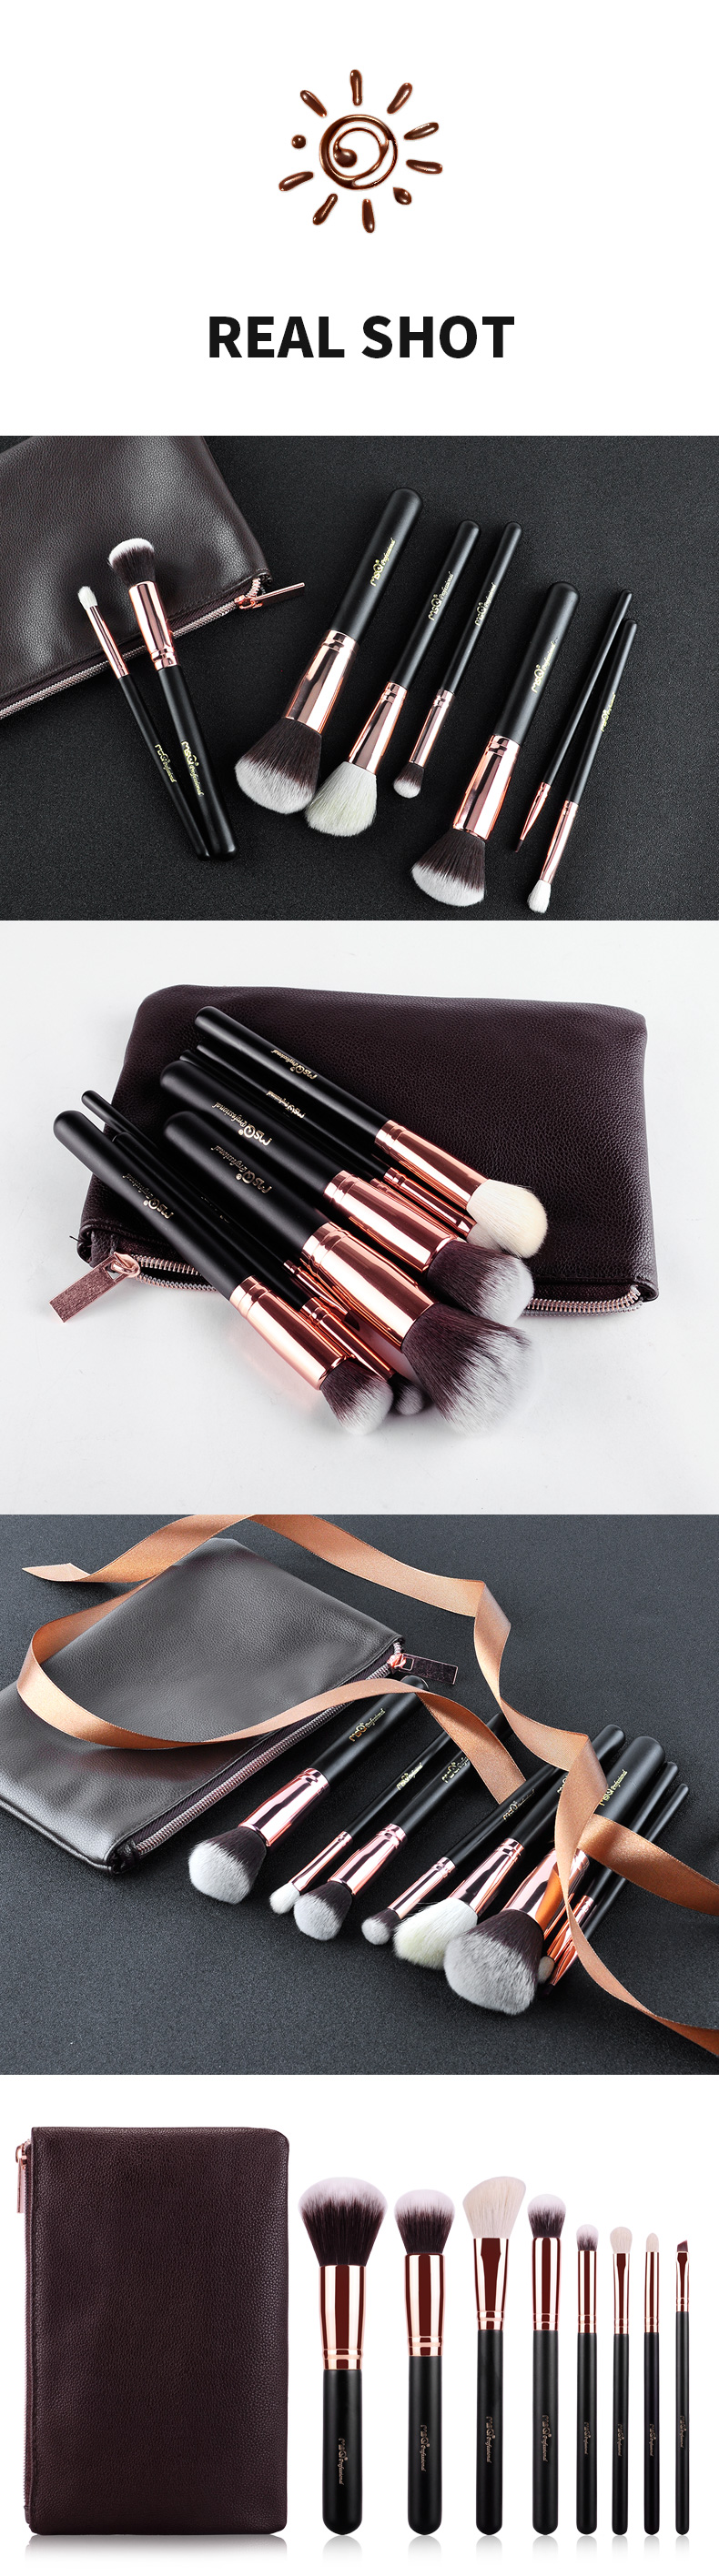 MSQ 8pcs makeup brush kit high quality custom logo makeup brush wholesale makeup brush